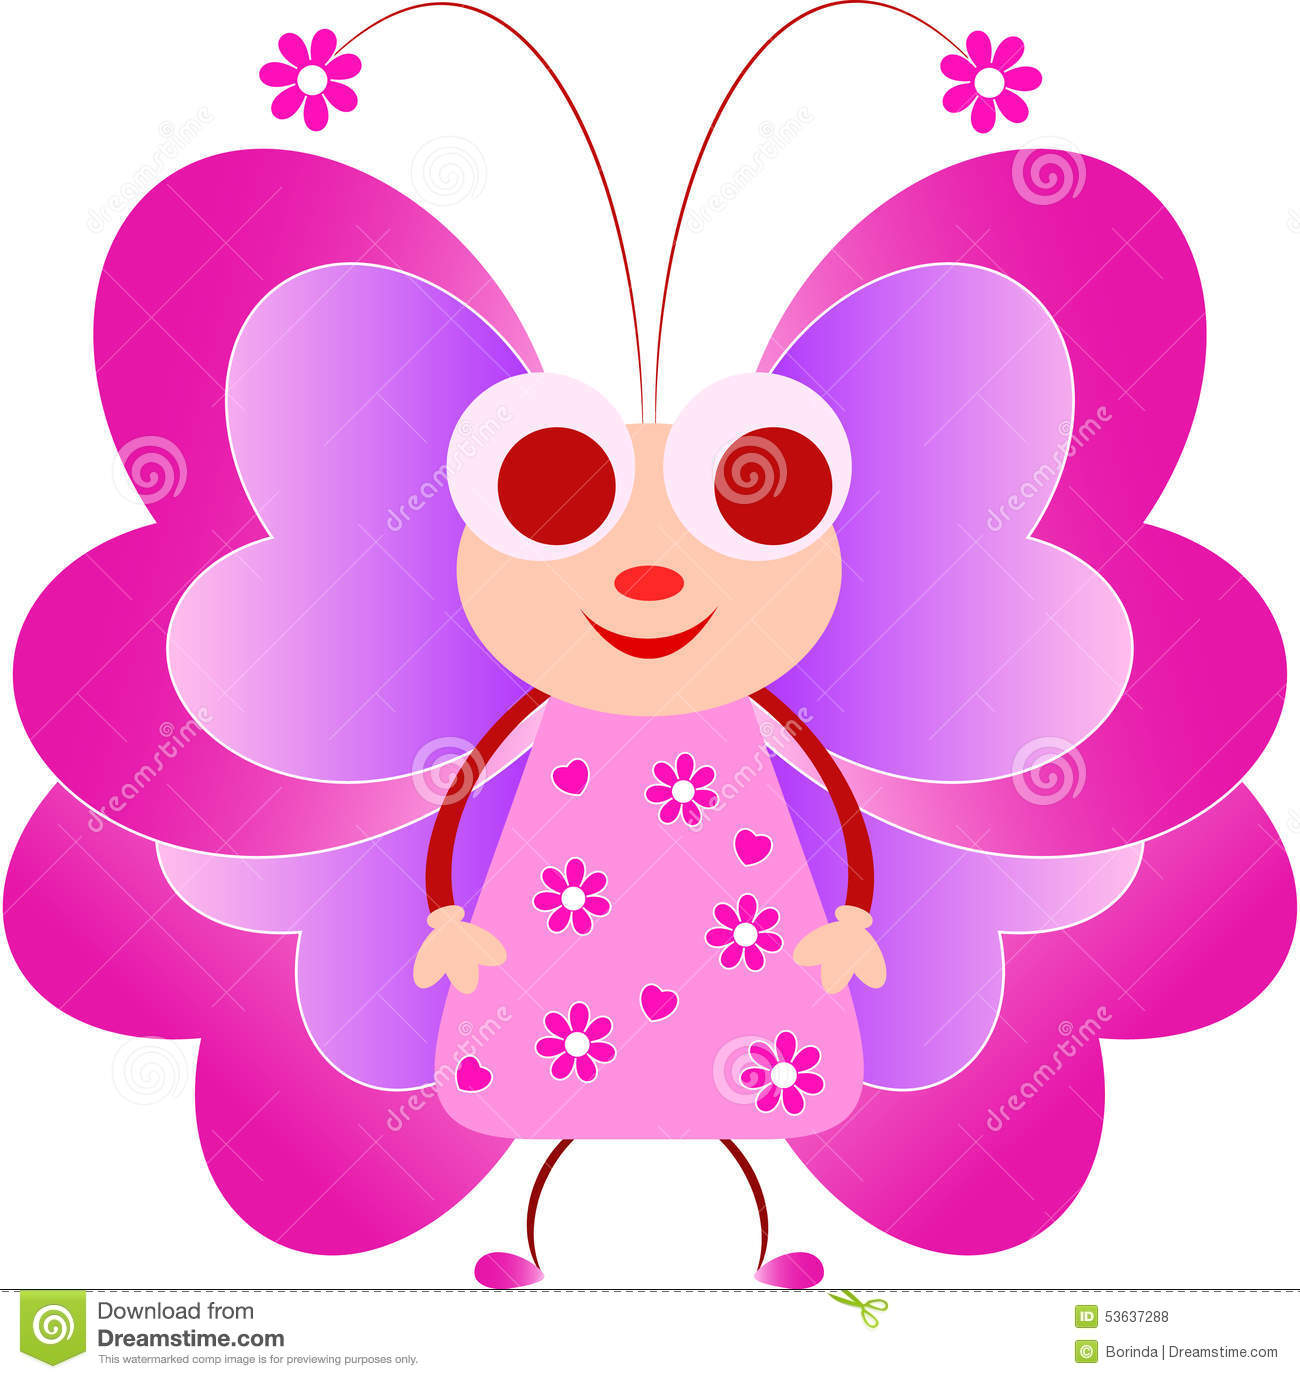 Pink Butterfly Illustration Cartoon Stock